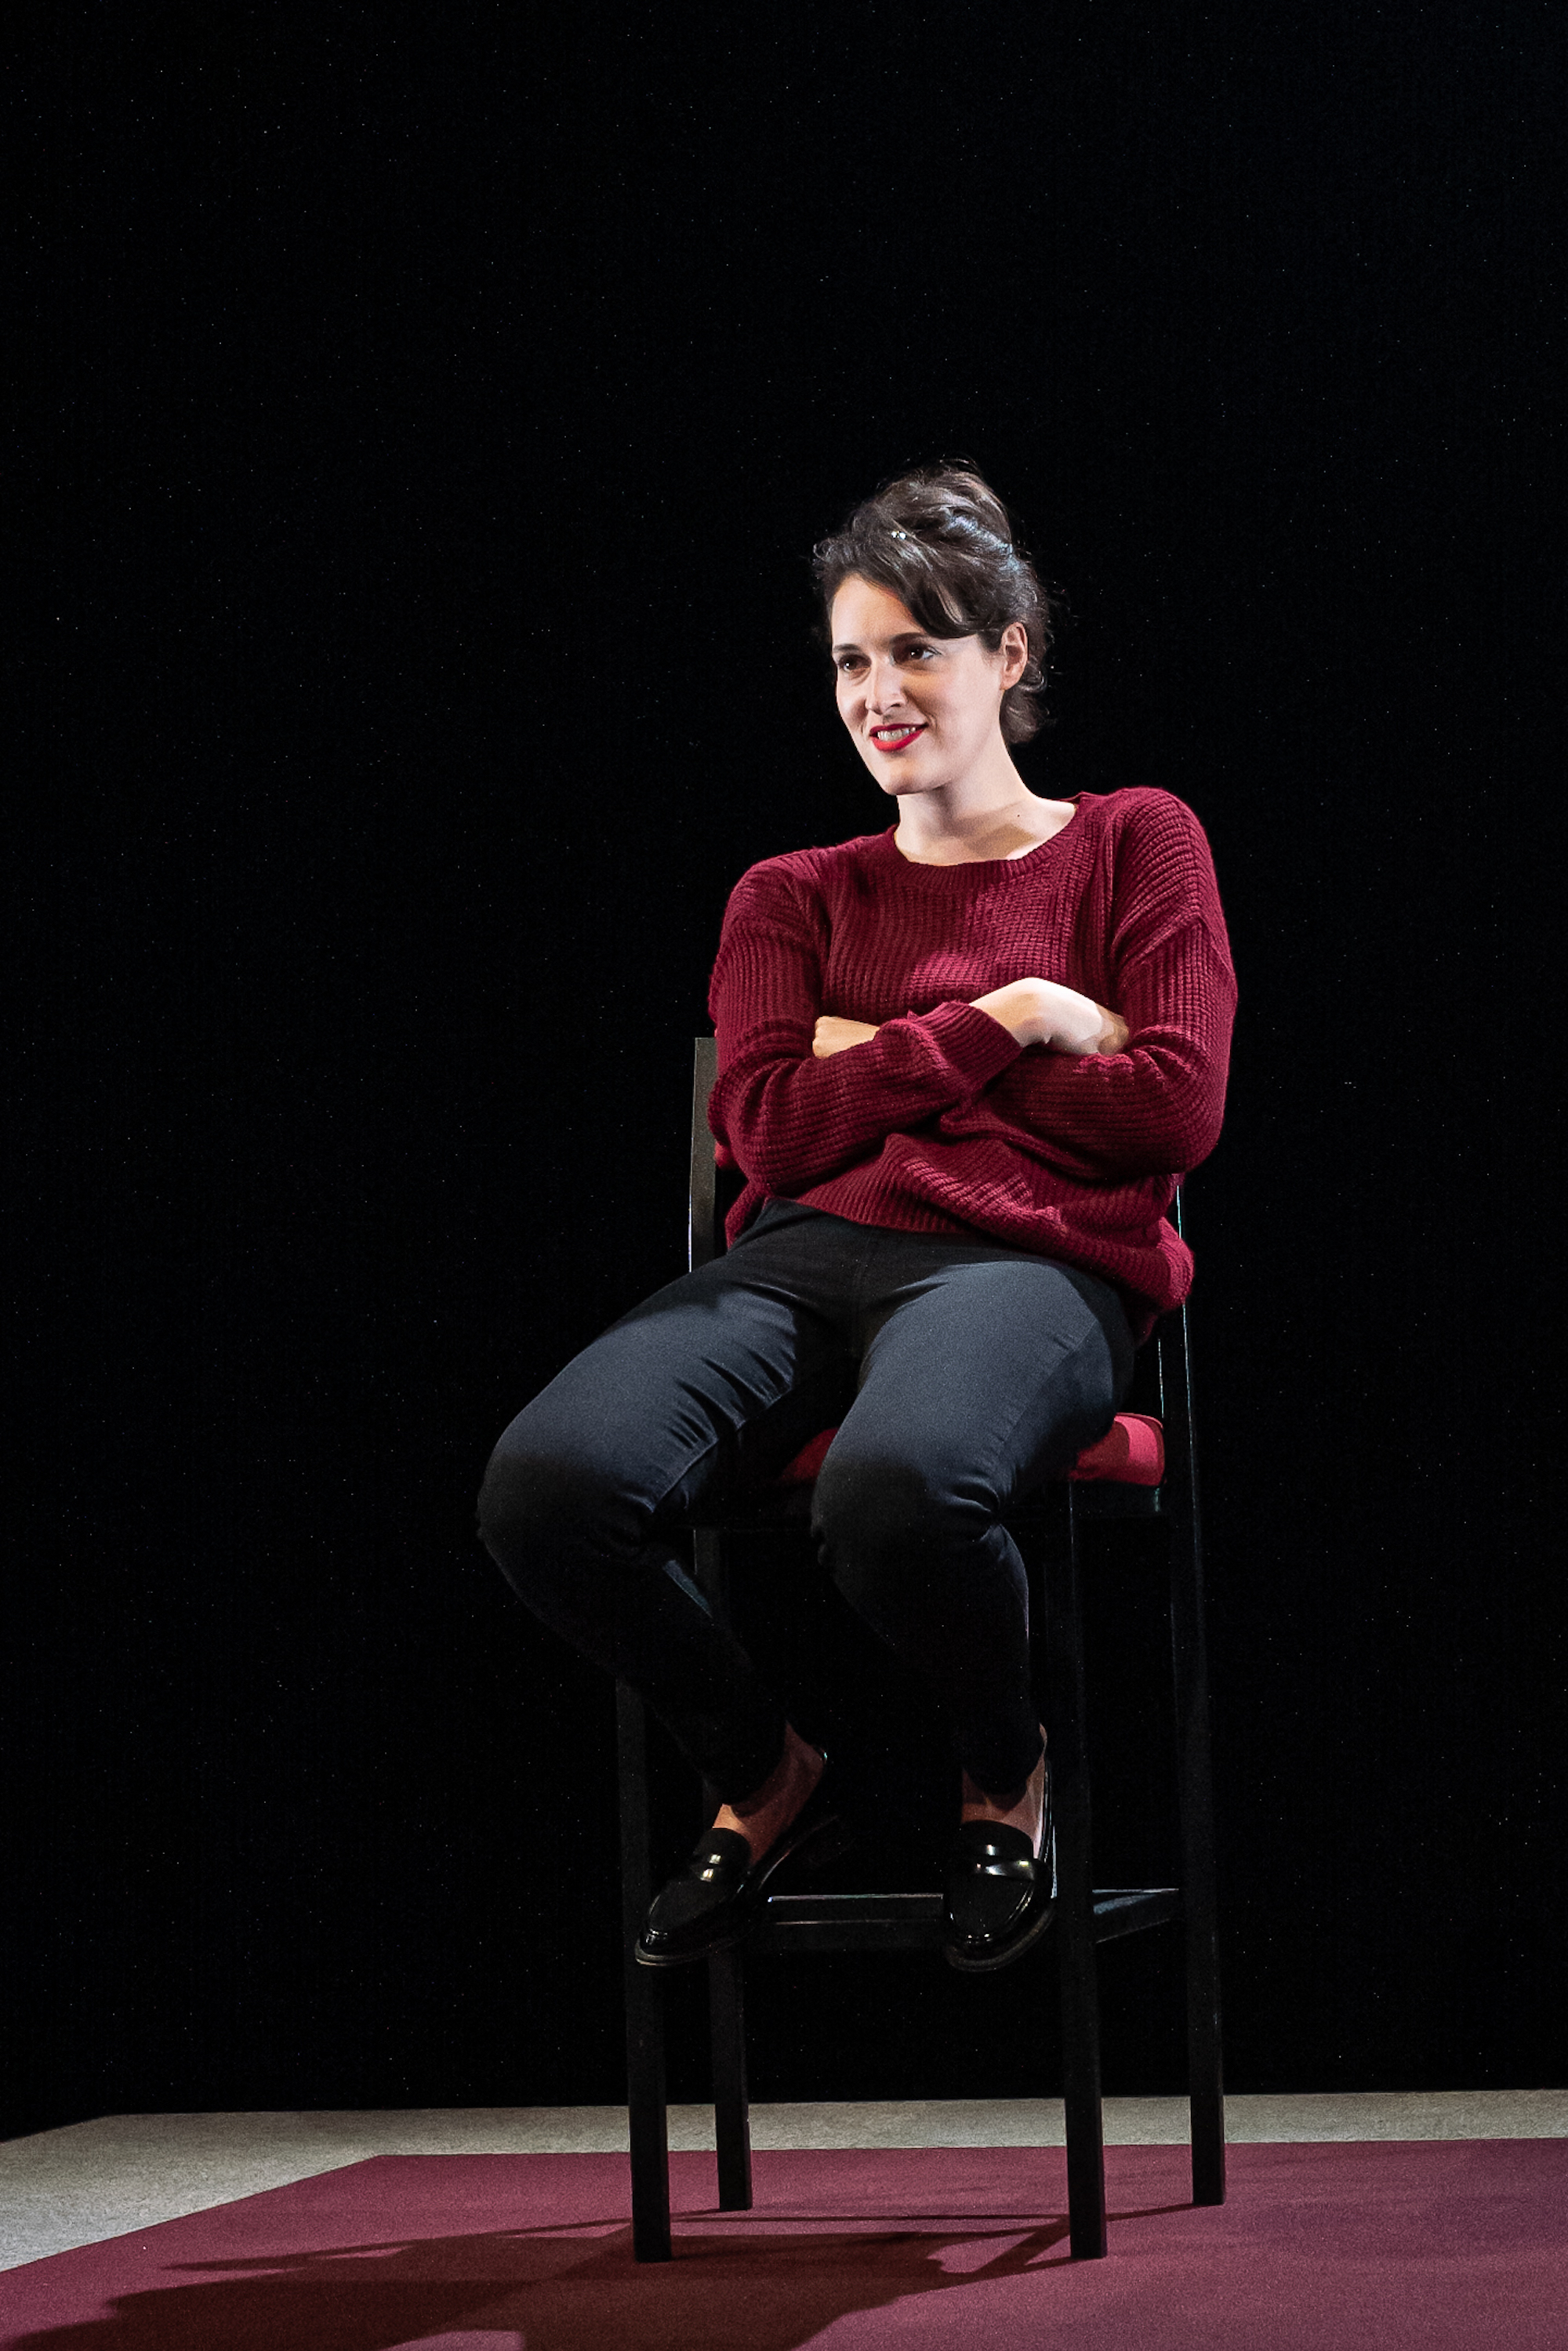 Phoebe Waller-Bridge in London theatre play of Fleabag arms crossed